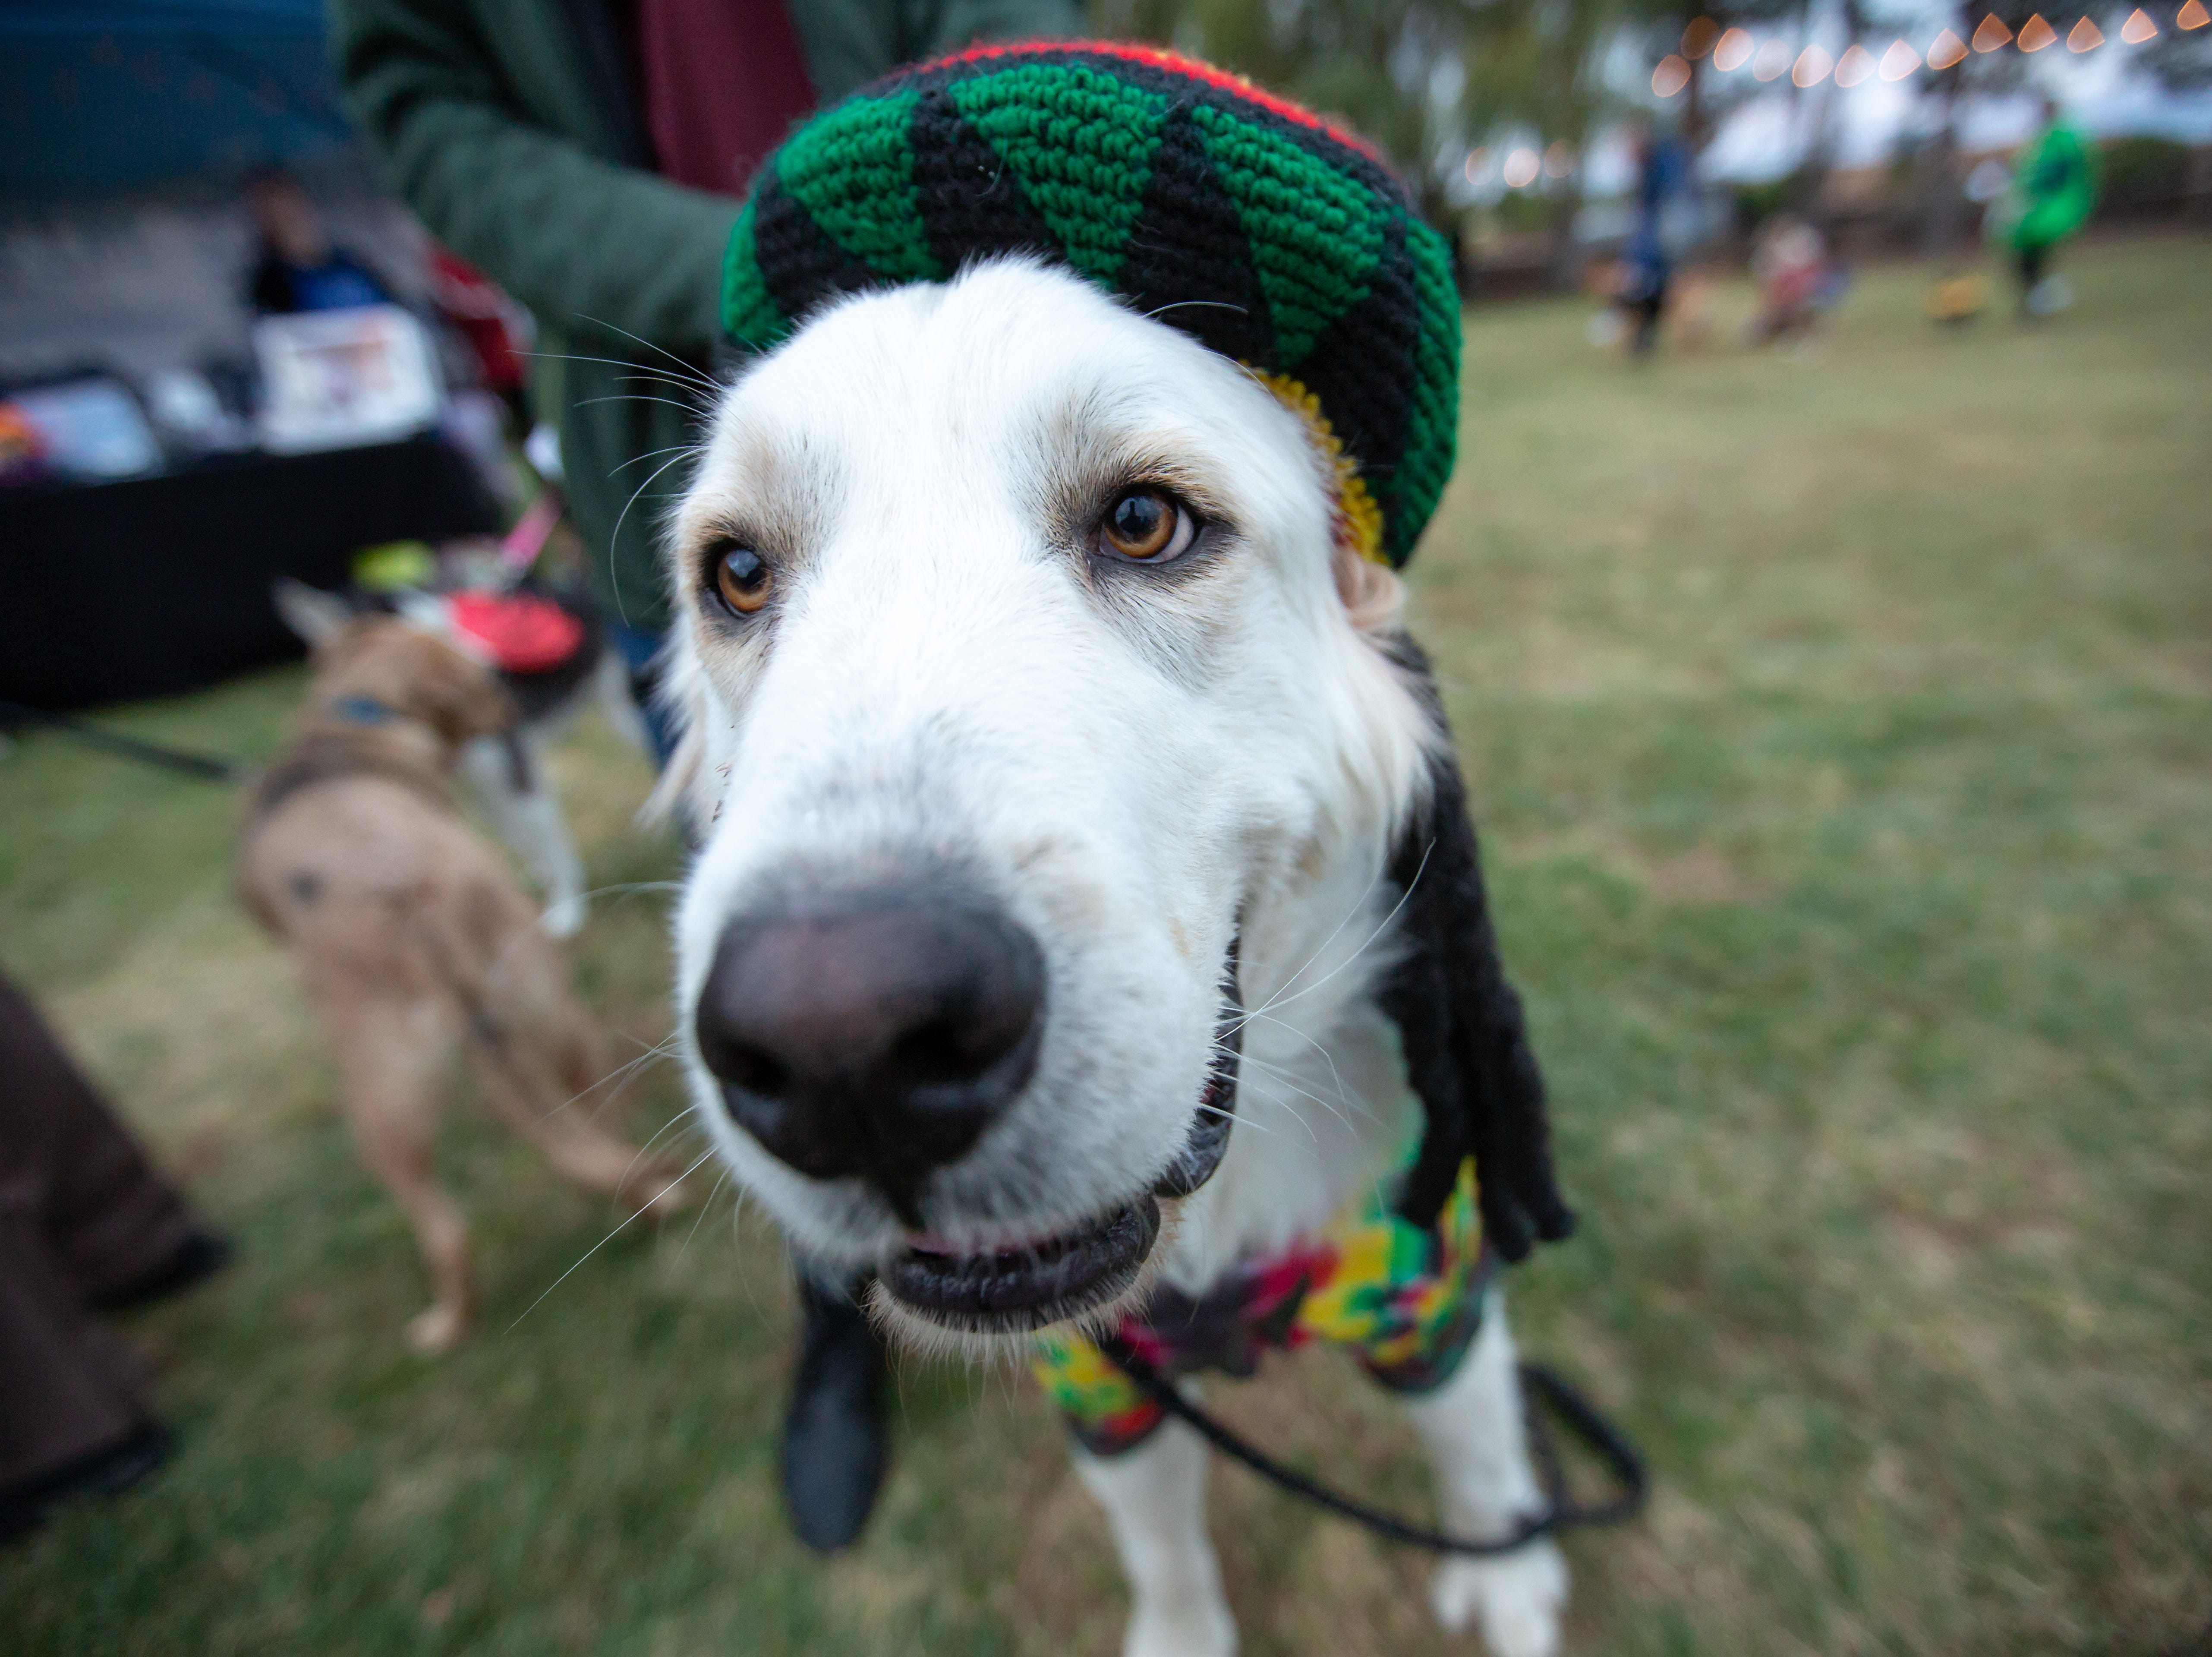 Snow, 3, is dressed as Bob Marley at the start of the Halloween costume contest for pets on Wednesday, Oct. 17, 2018, during the final Yappy Hour of the year at St. Clair Winery and Bistro. The dog's handler, Hayley Stewart, is not pictured.